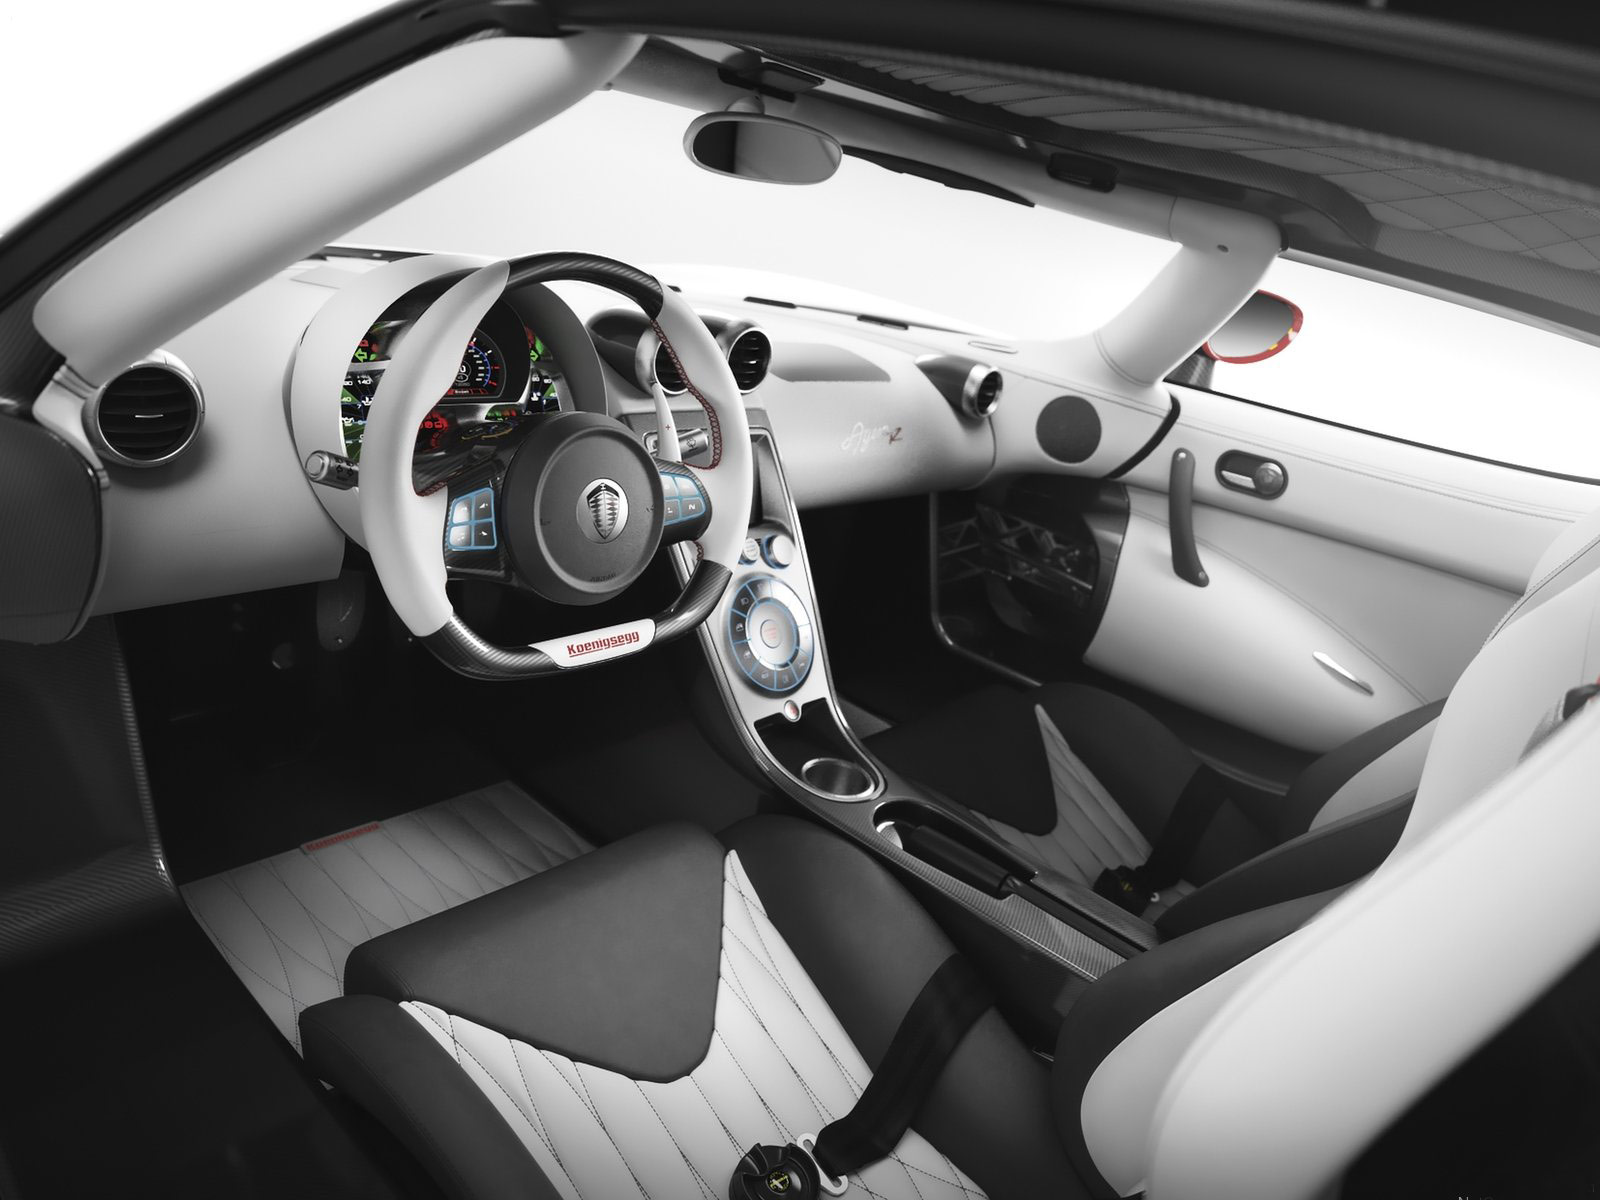 Koenigsegg Agera R 2012 Reviews Vivid Car